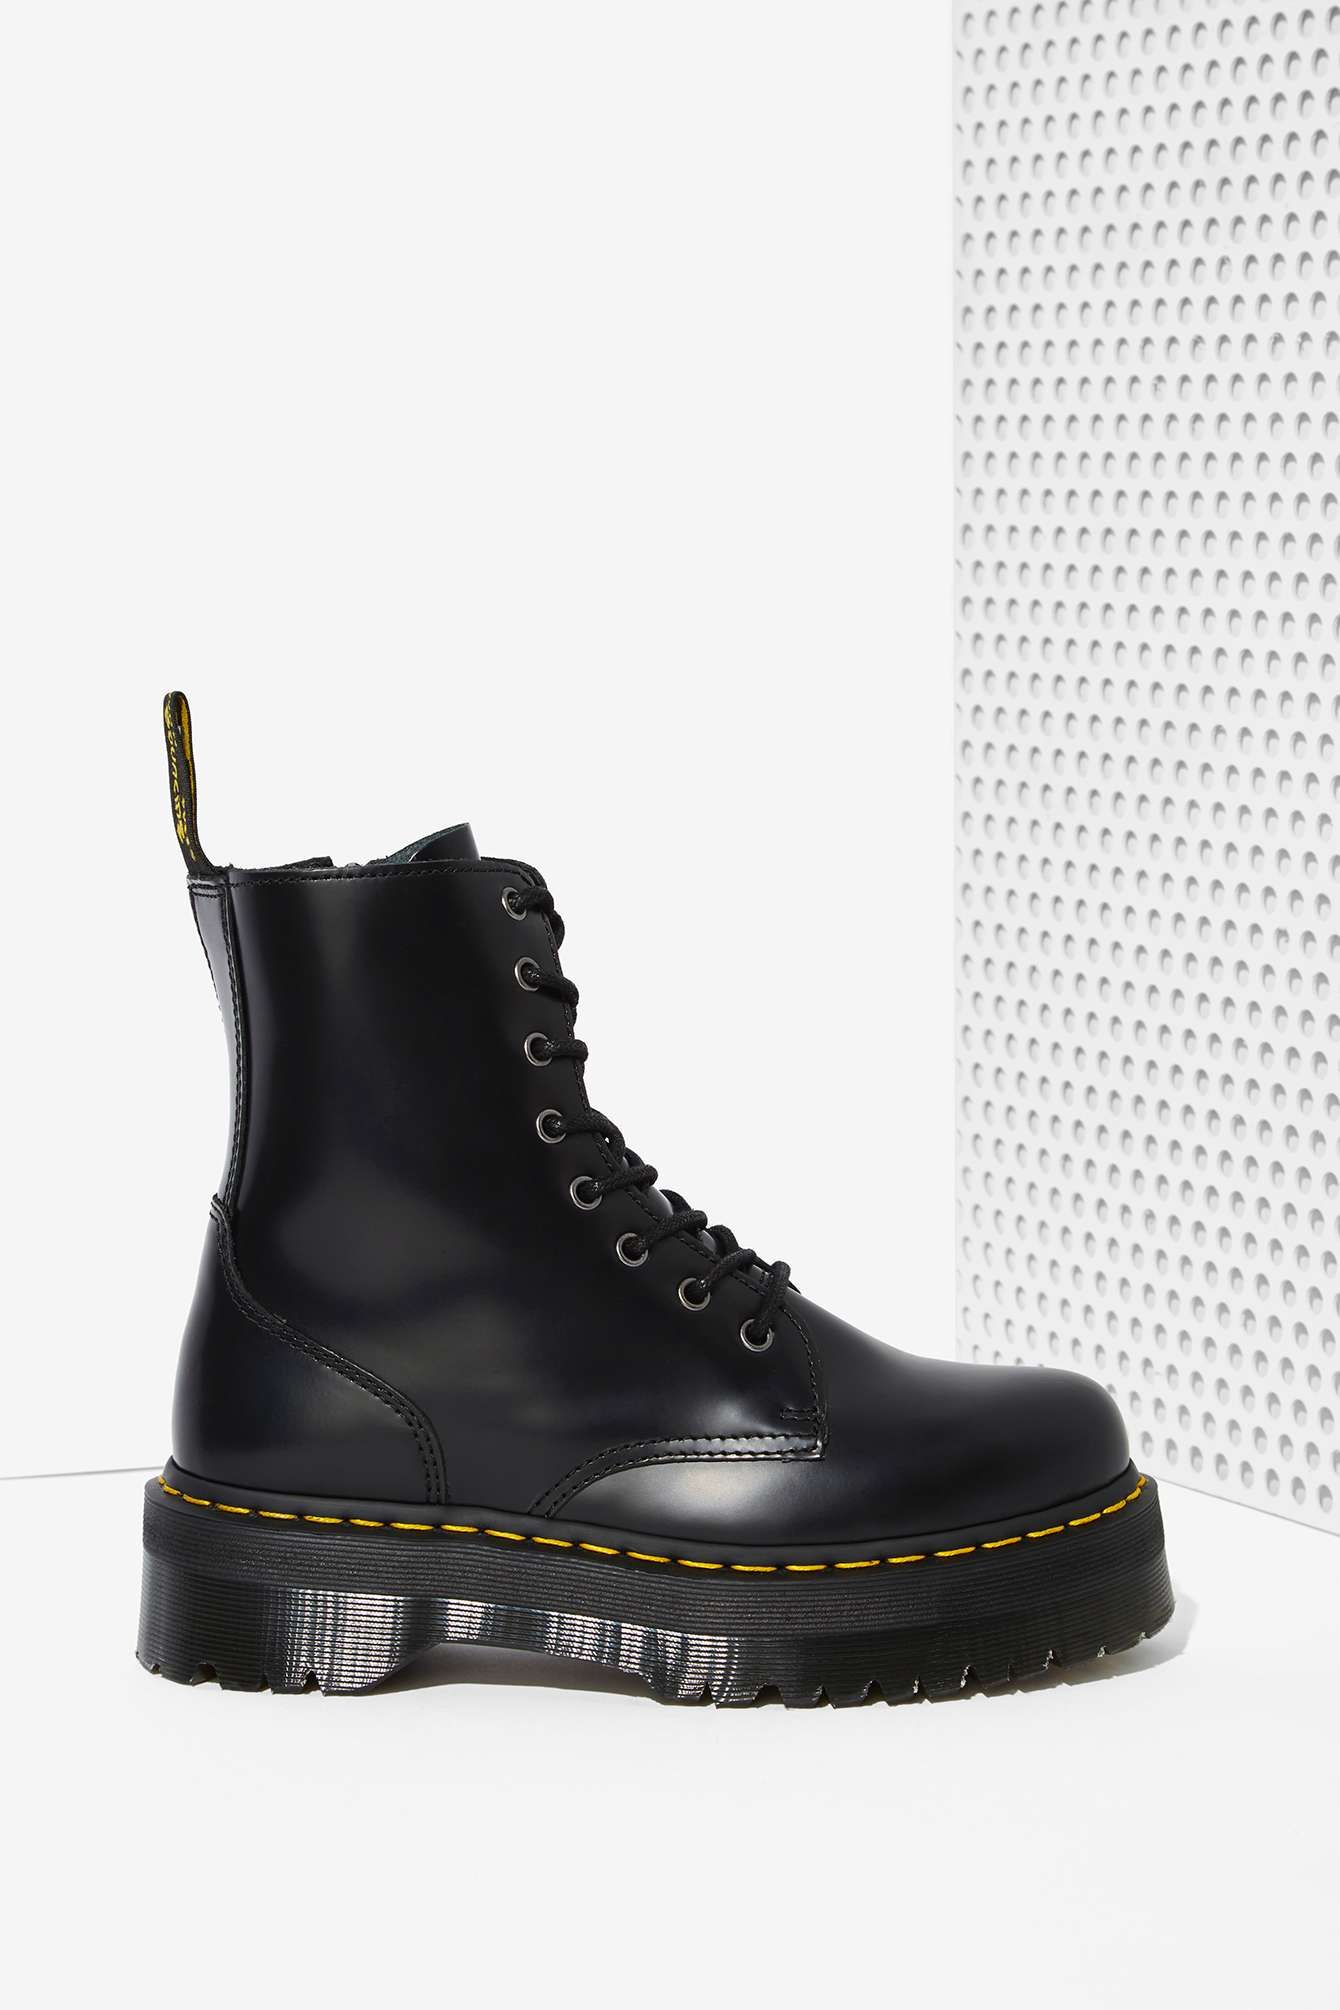 5fbf66a994cb Shop all women s shoes at Nasty Gal. Like eating glass. Dr. Martens Jadon  8-Eye Leather Boot